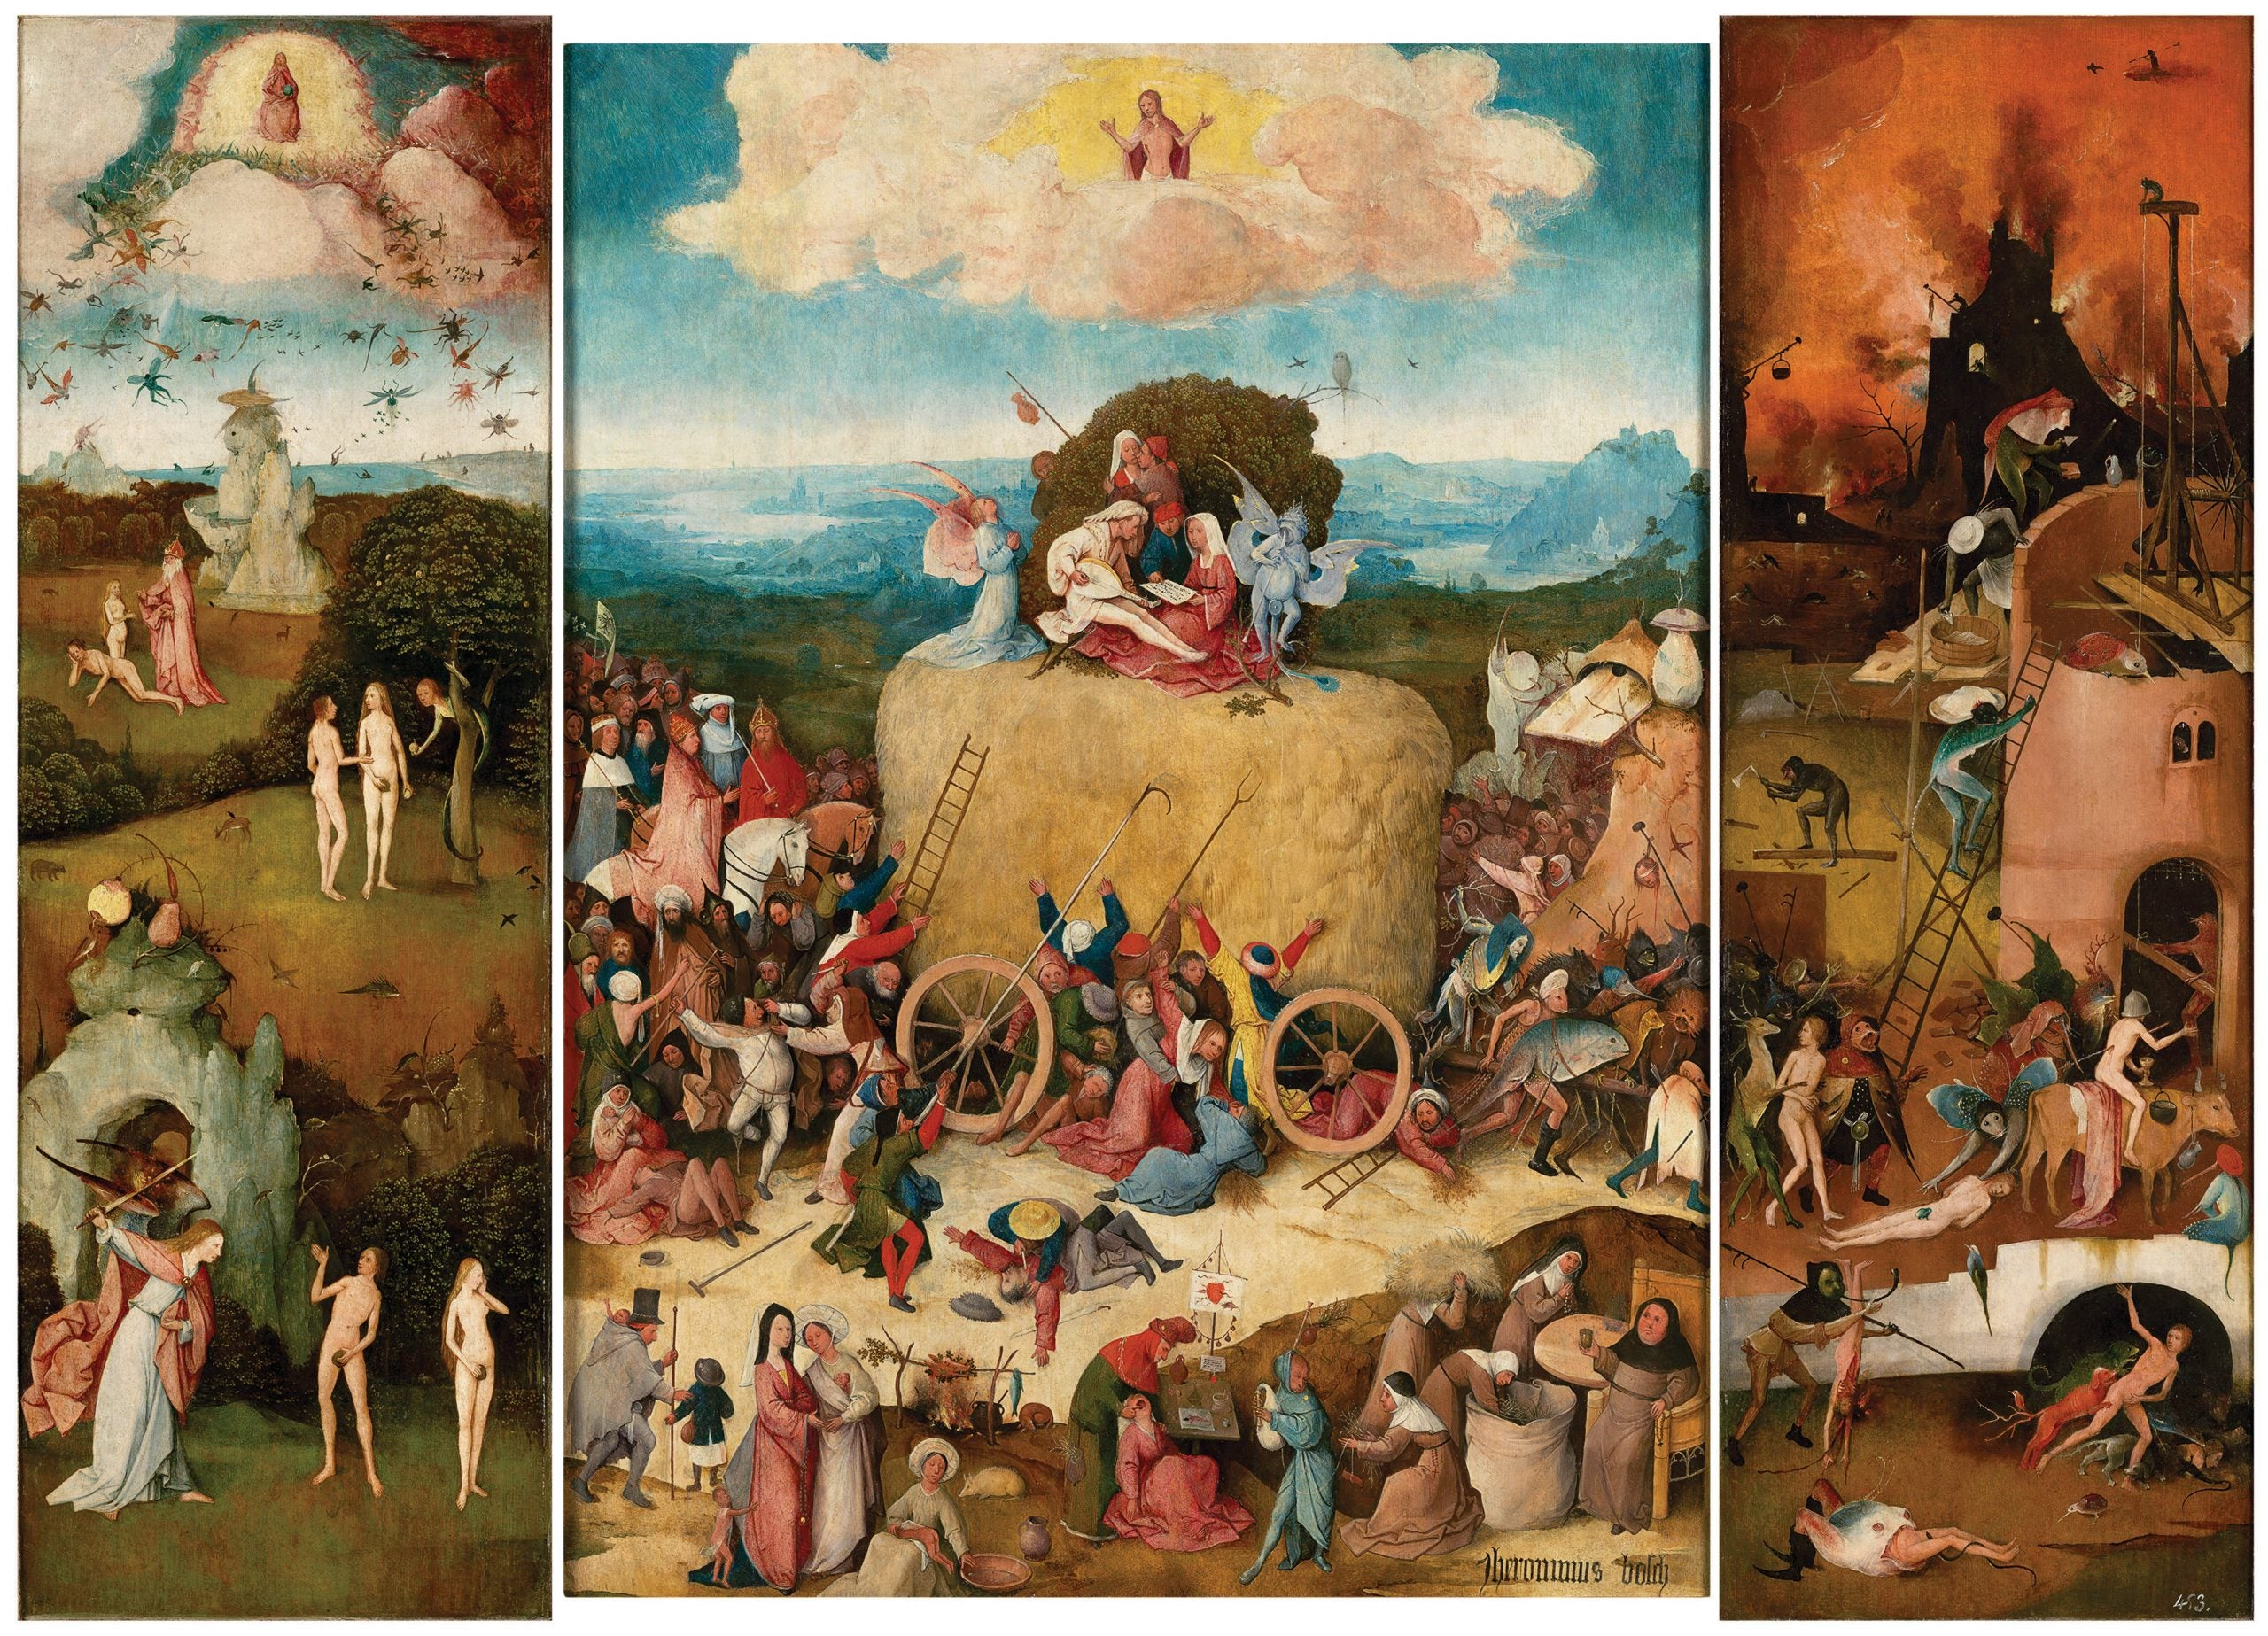 How Hieronymus Bosch defied the ideals of an age